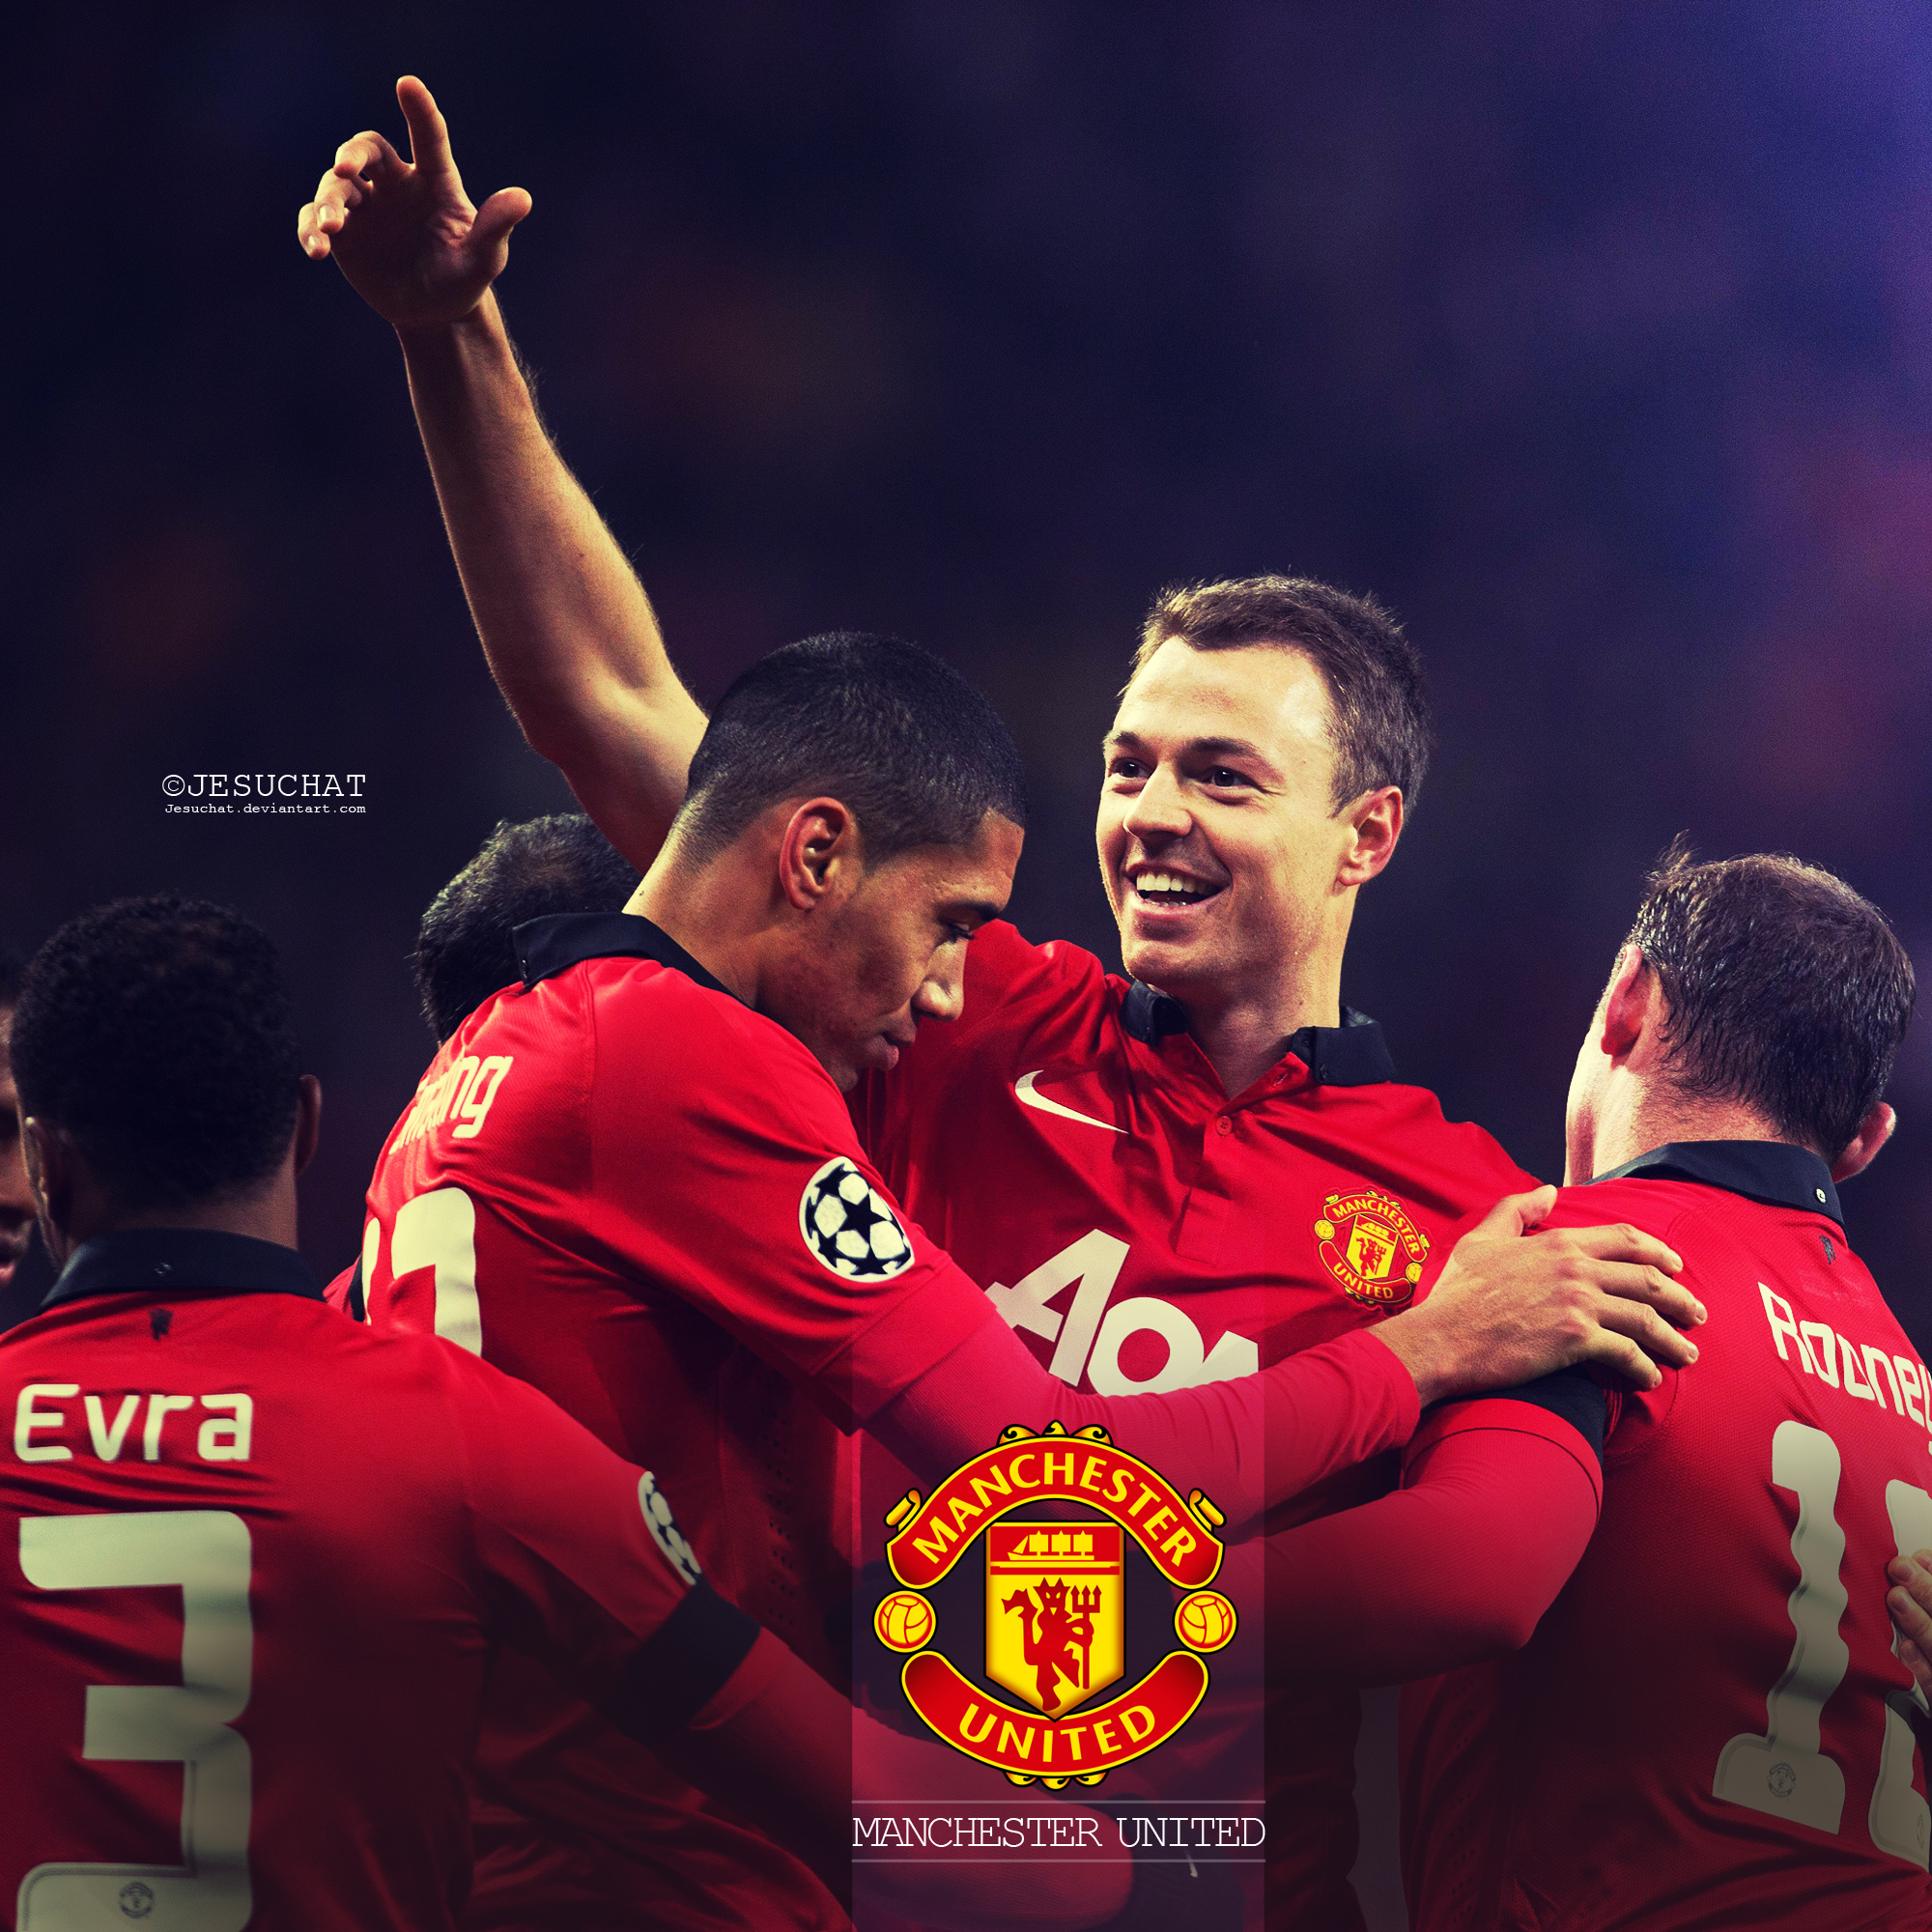 Manchester United Wallpapers Full Hd By Jesuchat On Deviantart